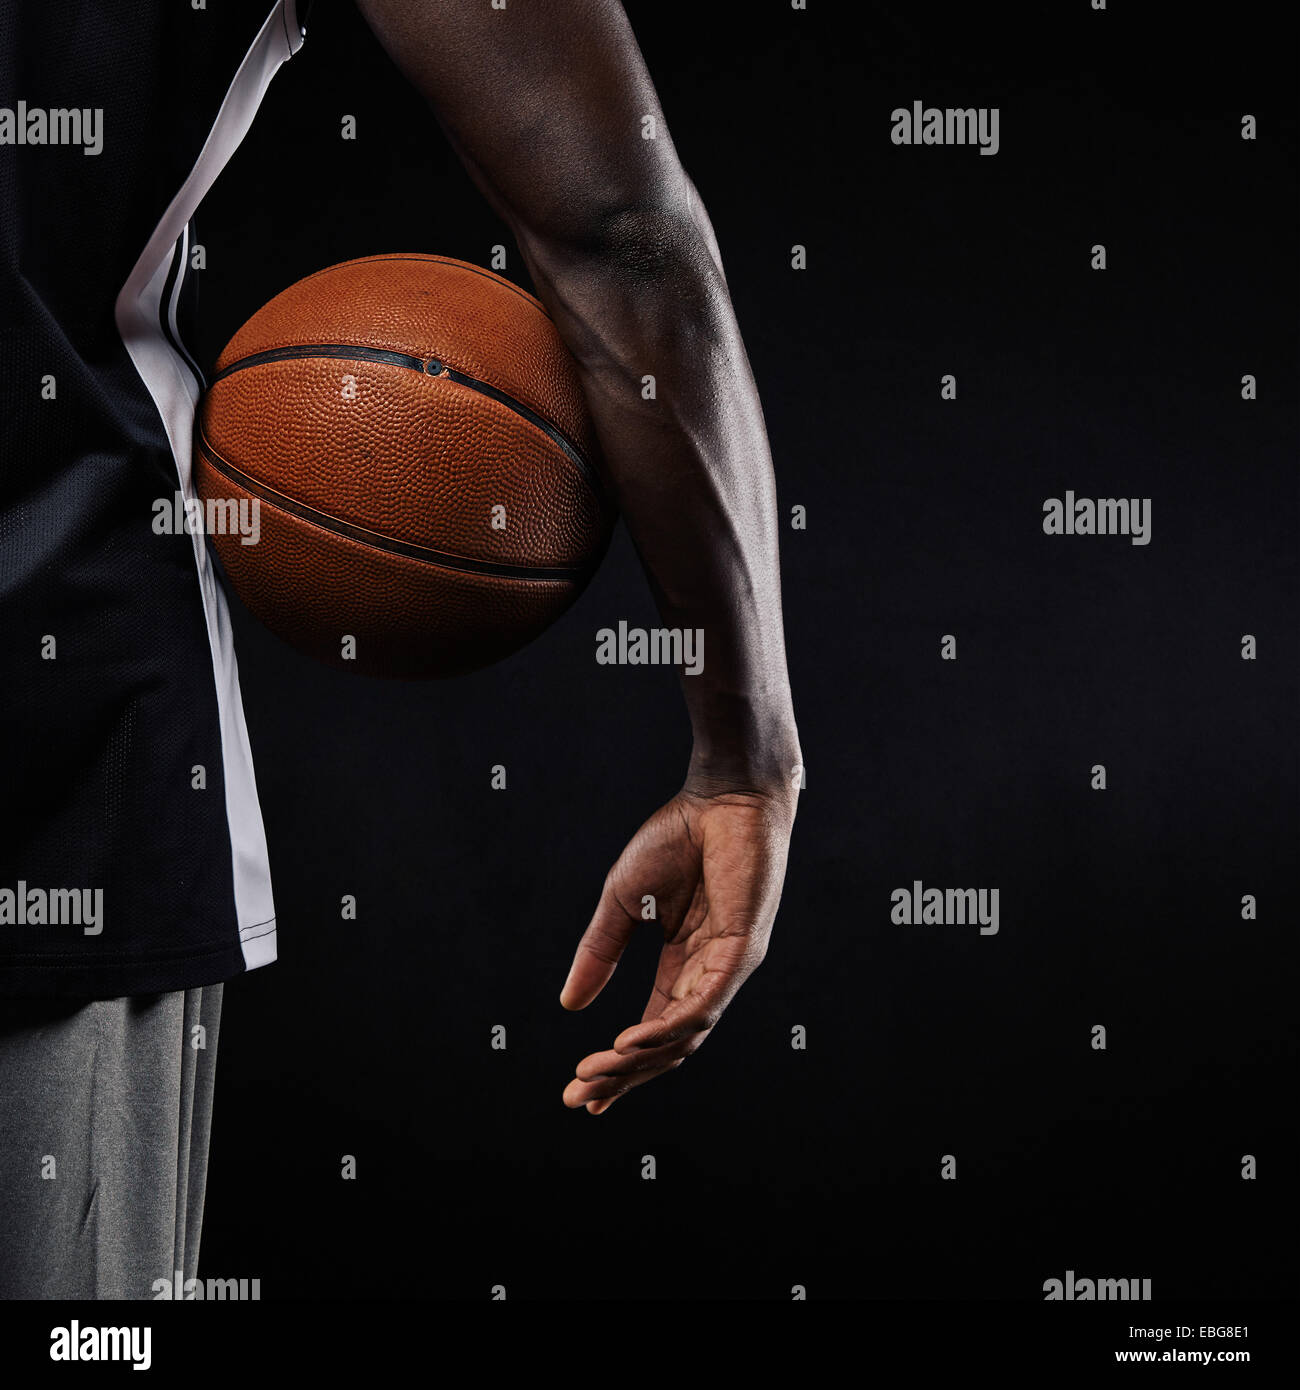 Close-up of a basketball in hand of a young African athlete against black background with copy space. - Stock Image